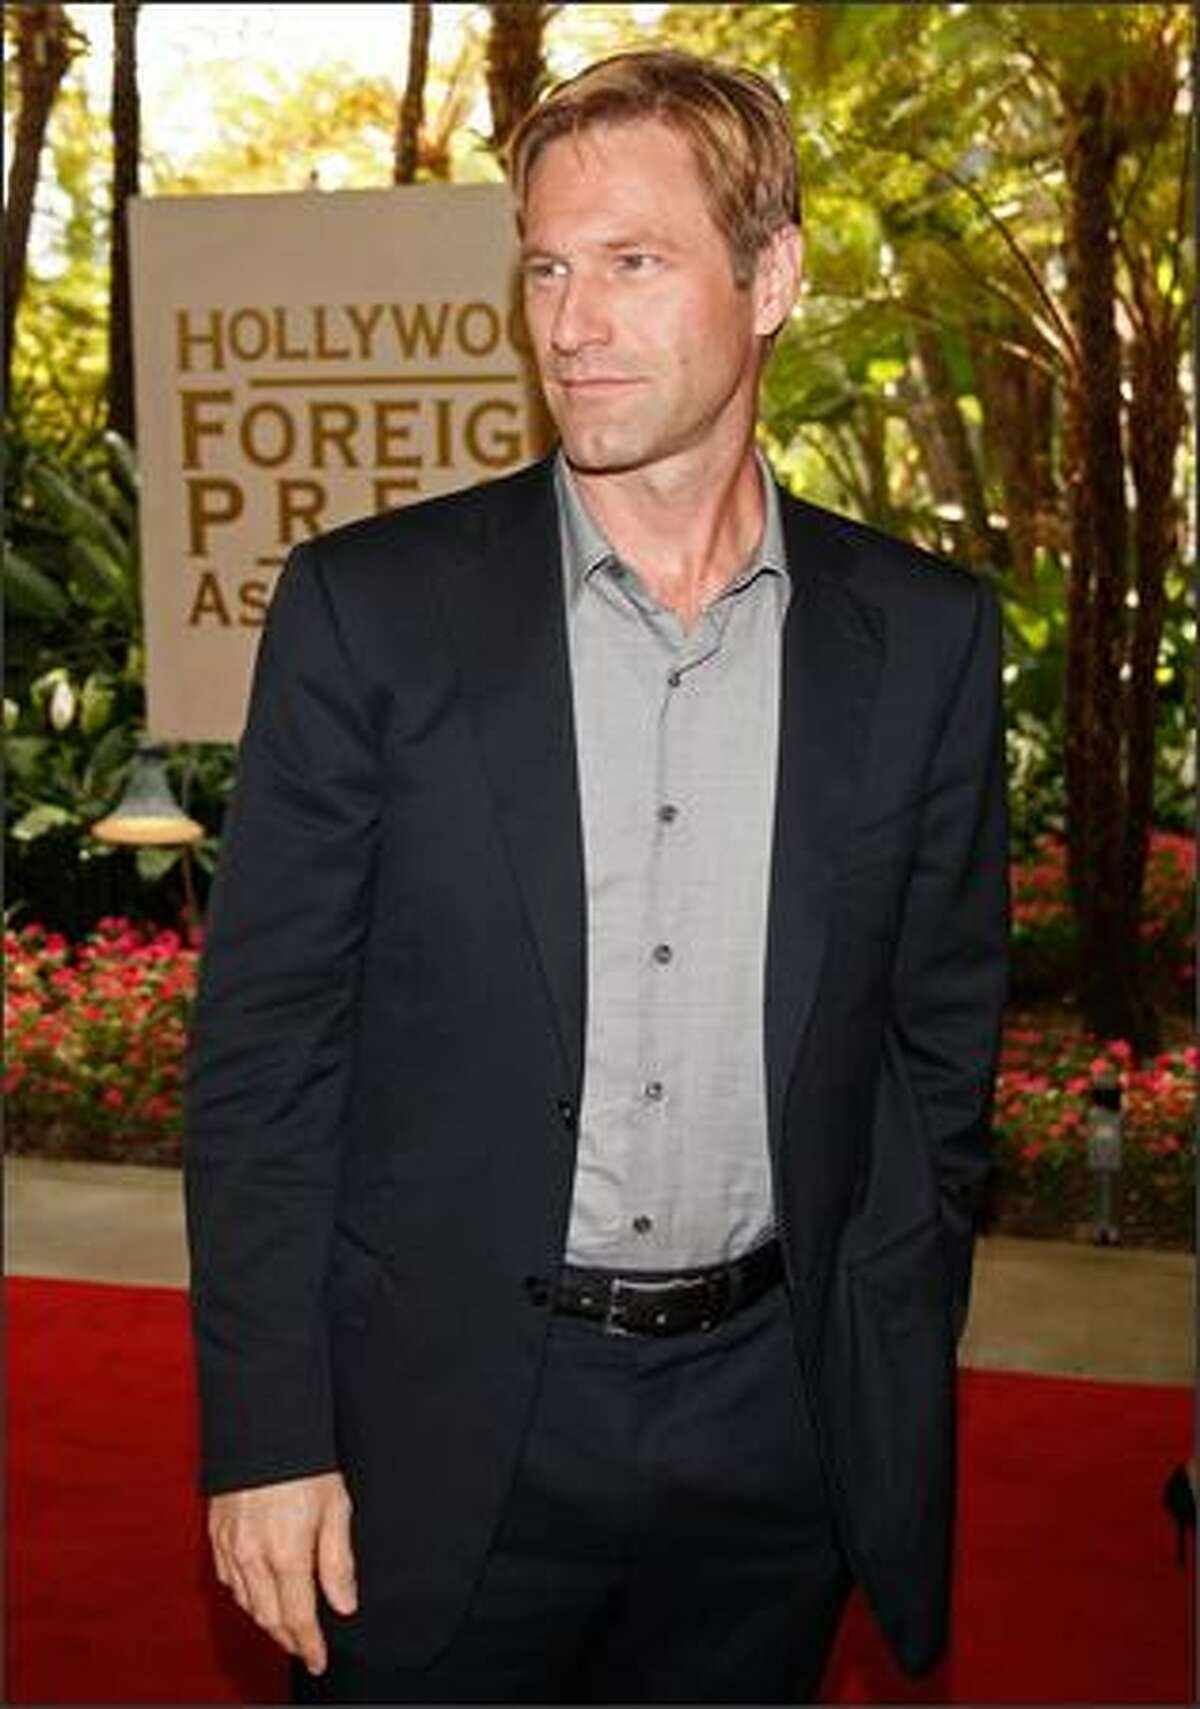 Actor Aaron Eckhart arrives at the Hollywood Foreign Press Association's annual summer luncheon held at the Beverly Hills Hotel on Wednesday in Beverly Hills, Calif.